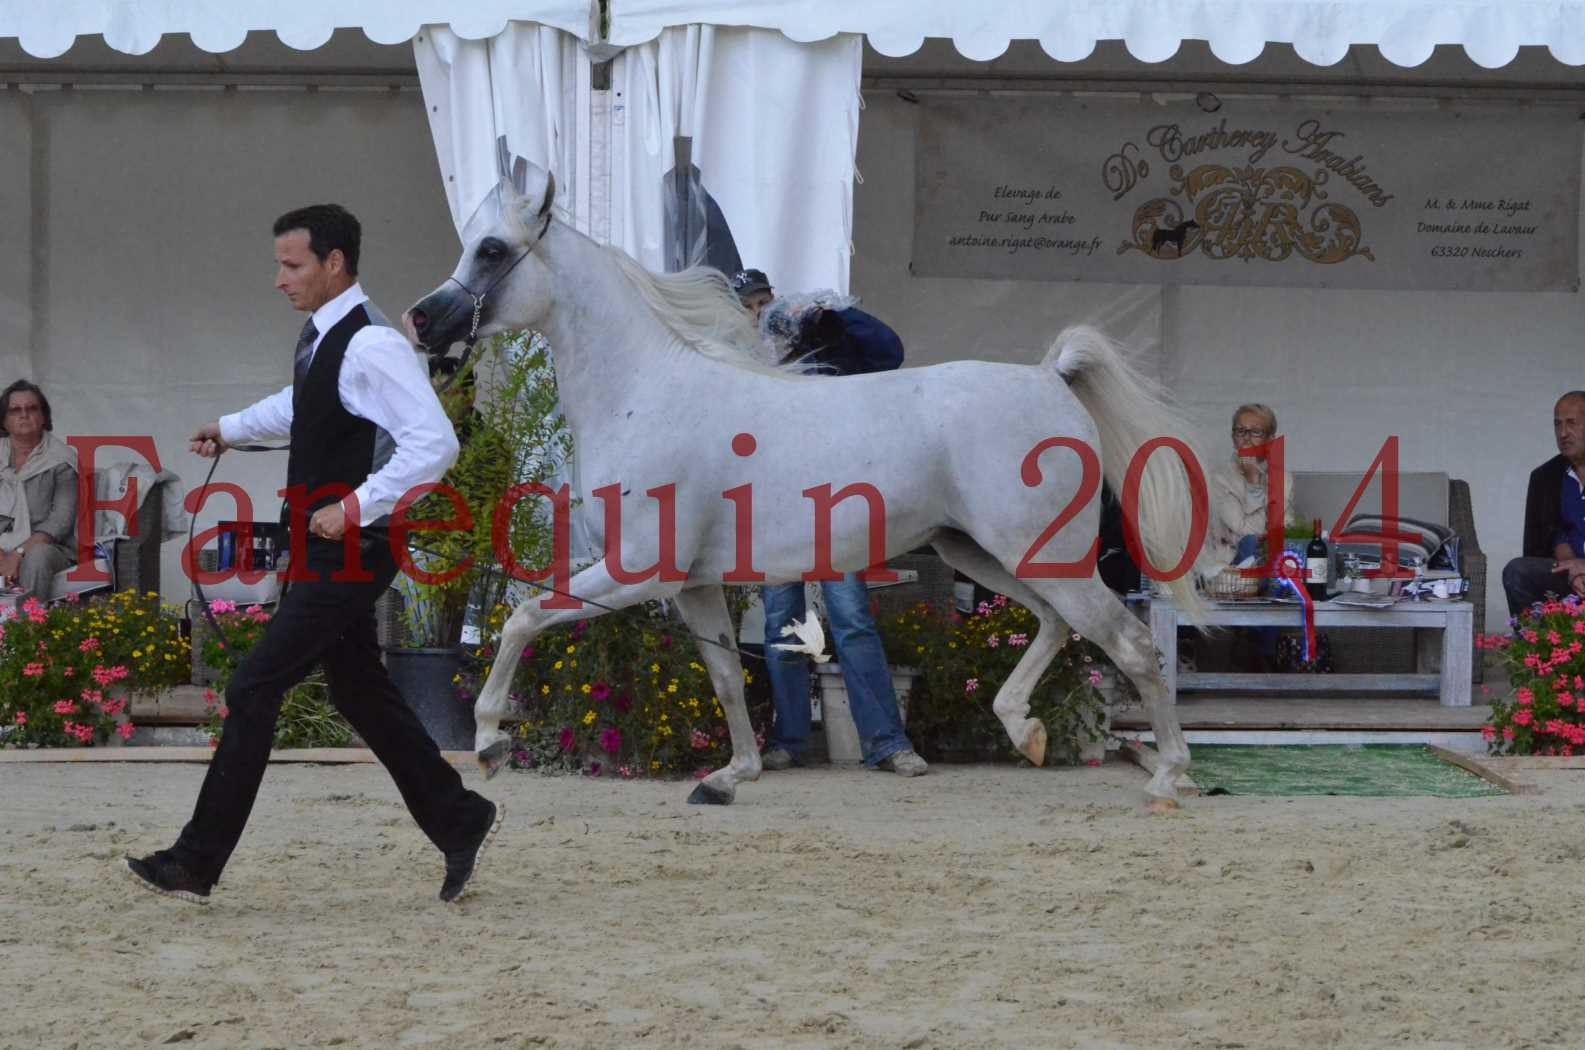 CHAMPIONNAT DE FRANCE 2014 A POMPADOUR - Sélection - FA STARLIGHT - 17